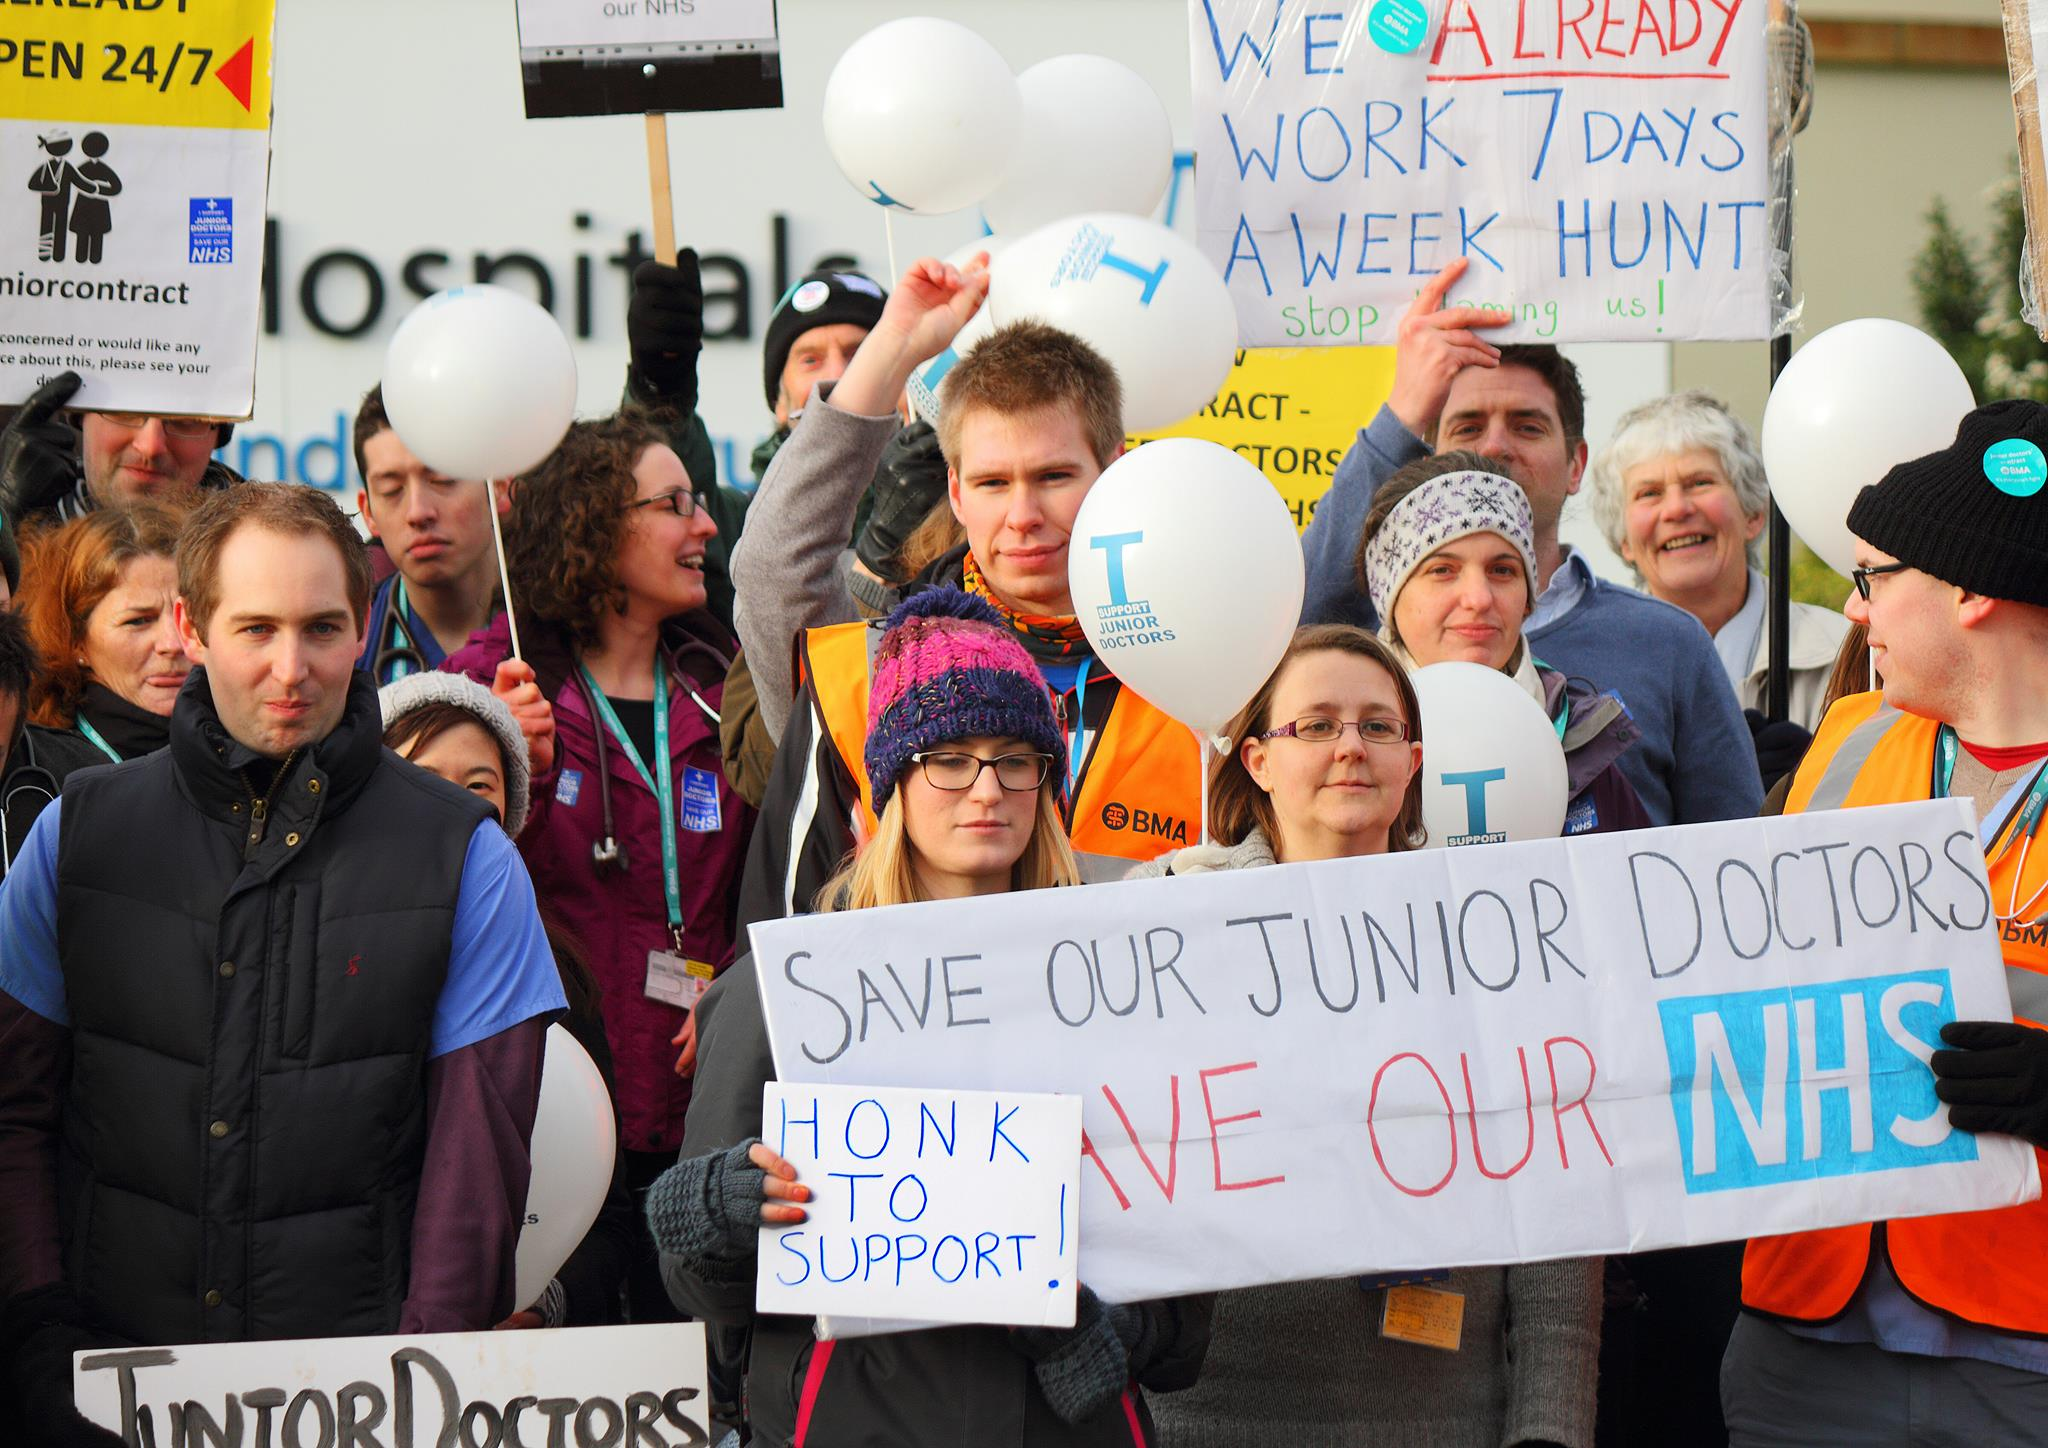 How are our hospitals coping with the Junior doctor strikes?